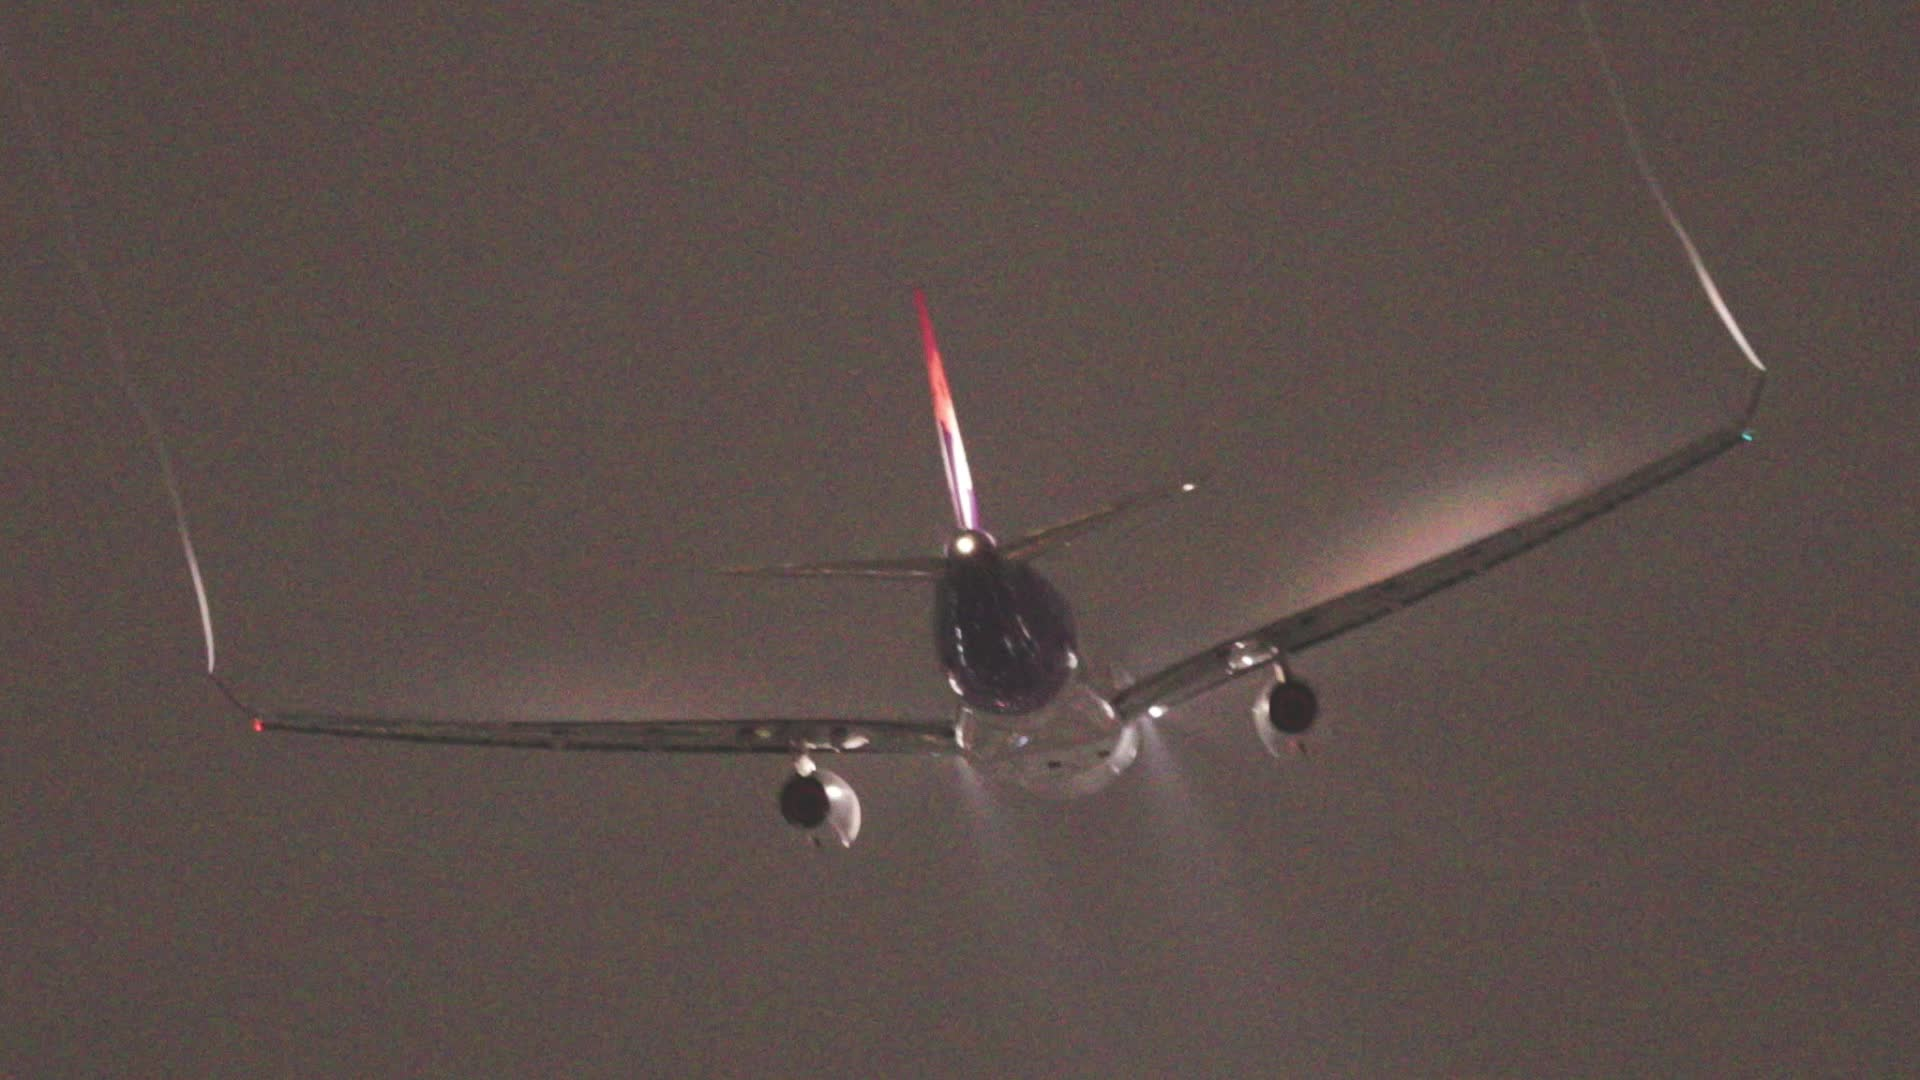 aviation, travel, woahdude, Airplane in humid air GIFs